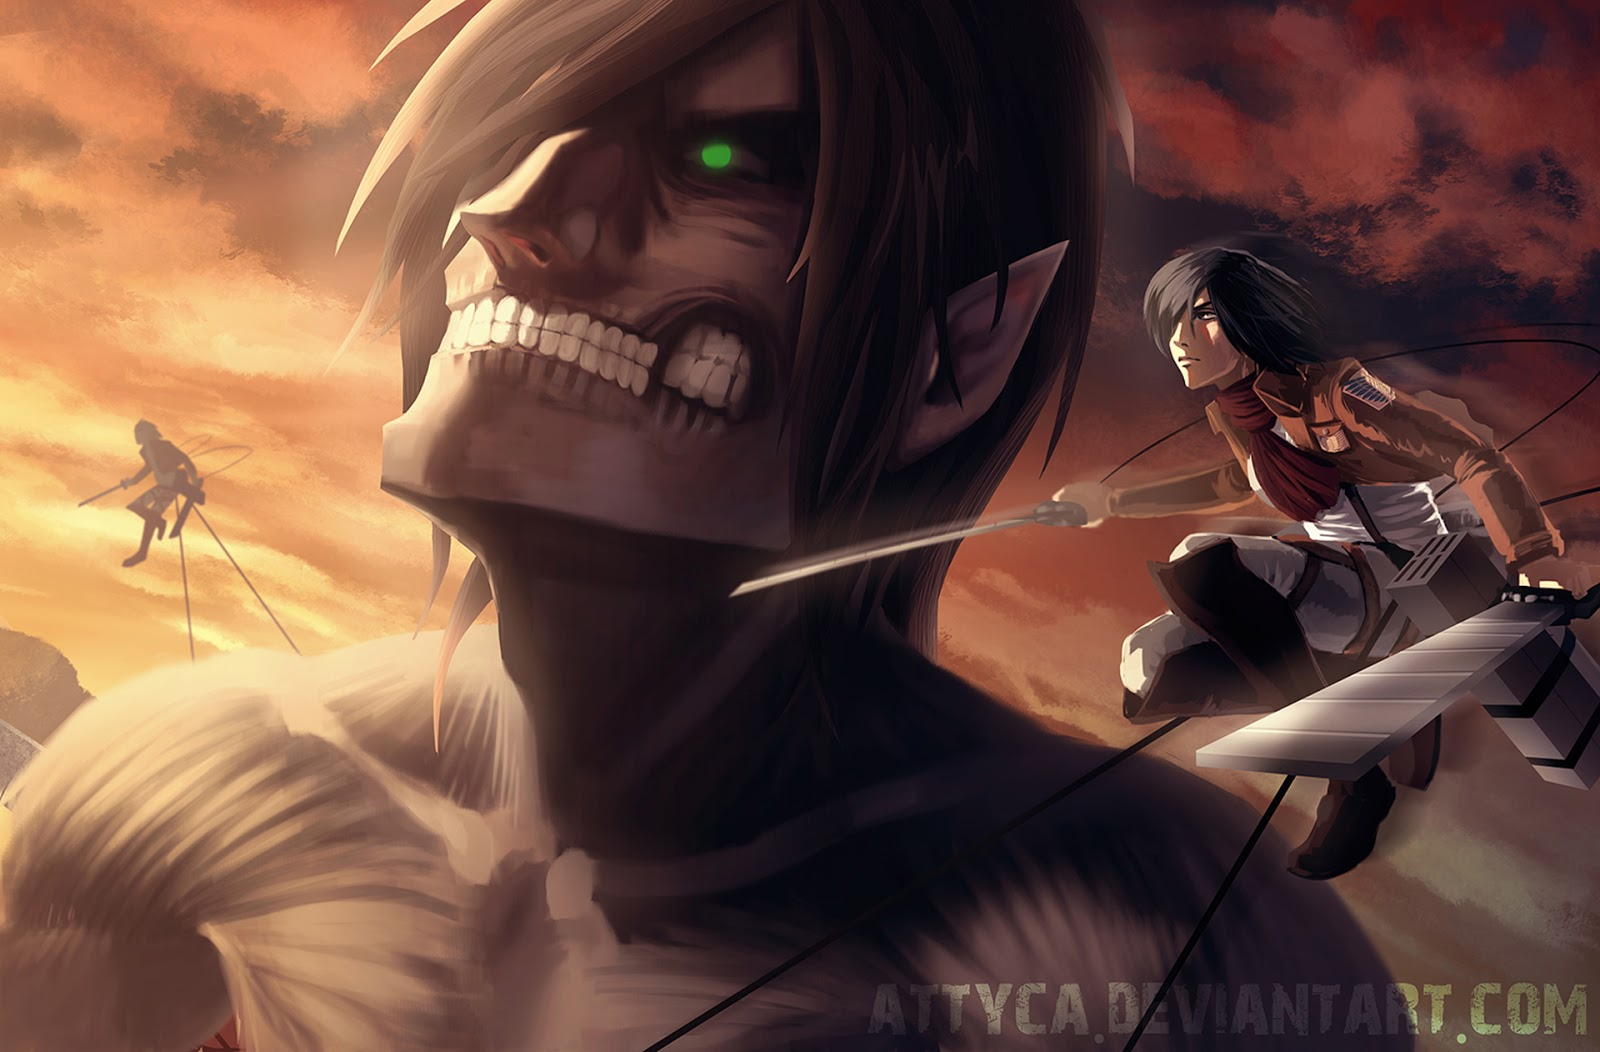 Free Download Eren Jaeger Titan Form Mikasa Ackerman Attack